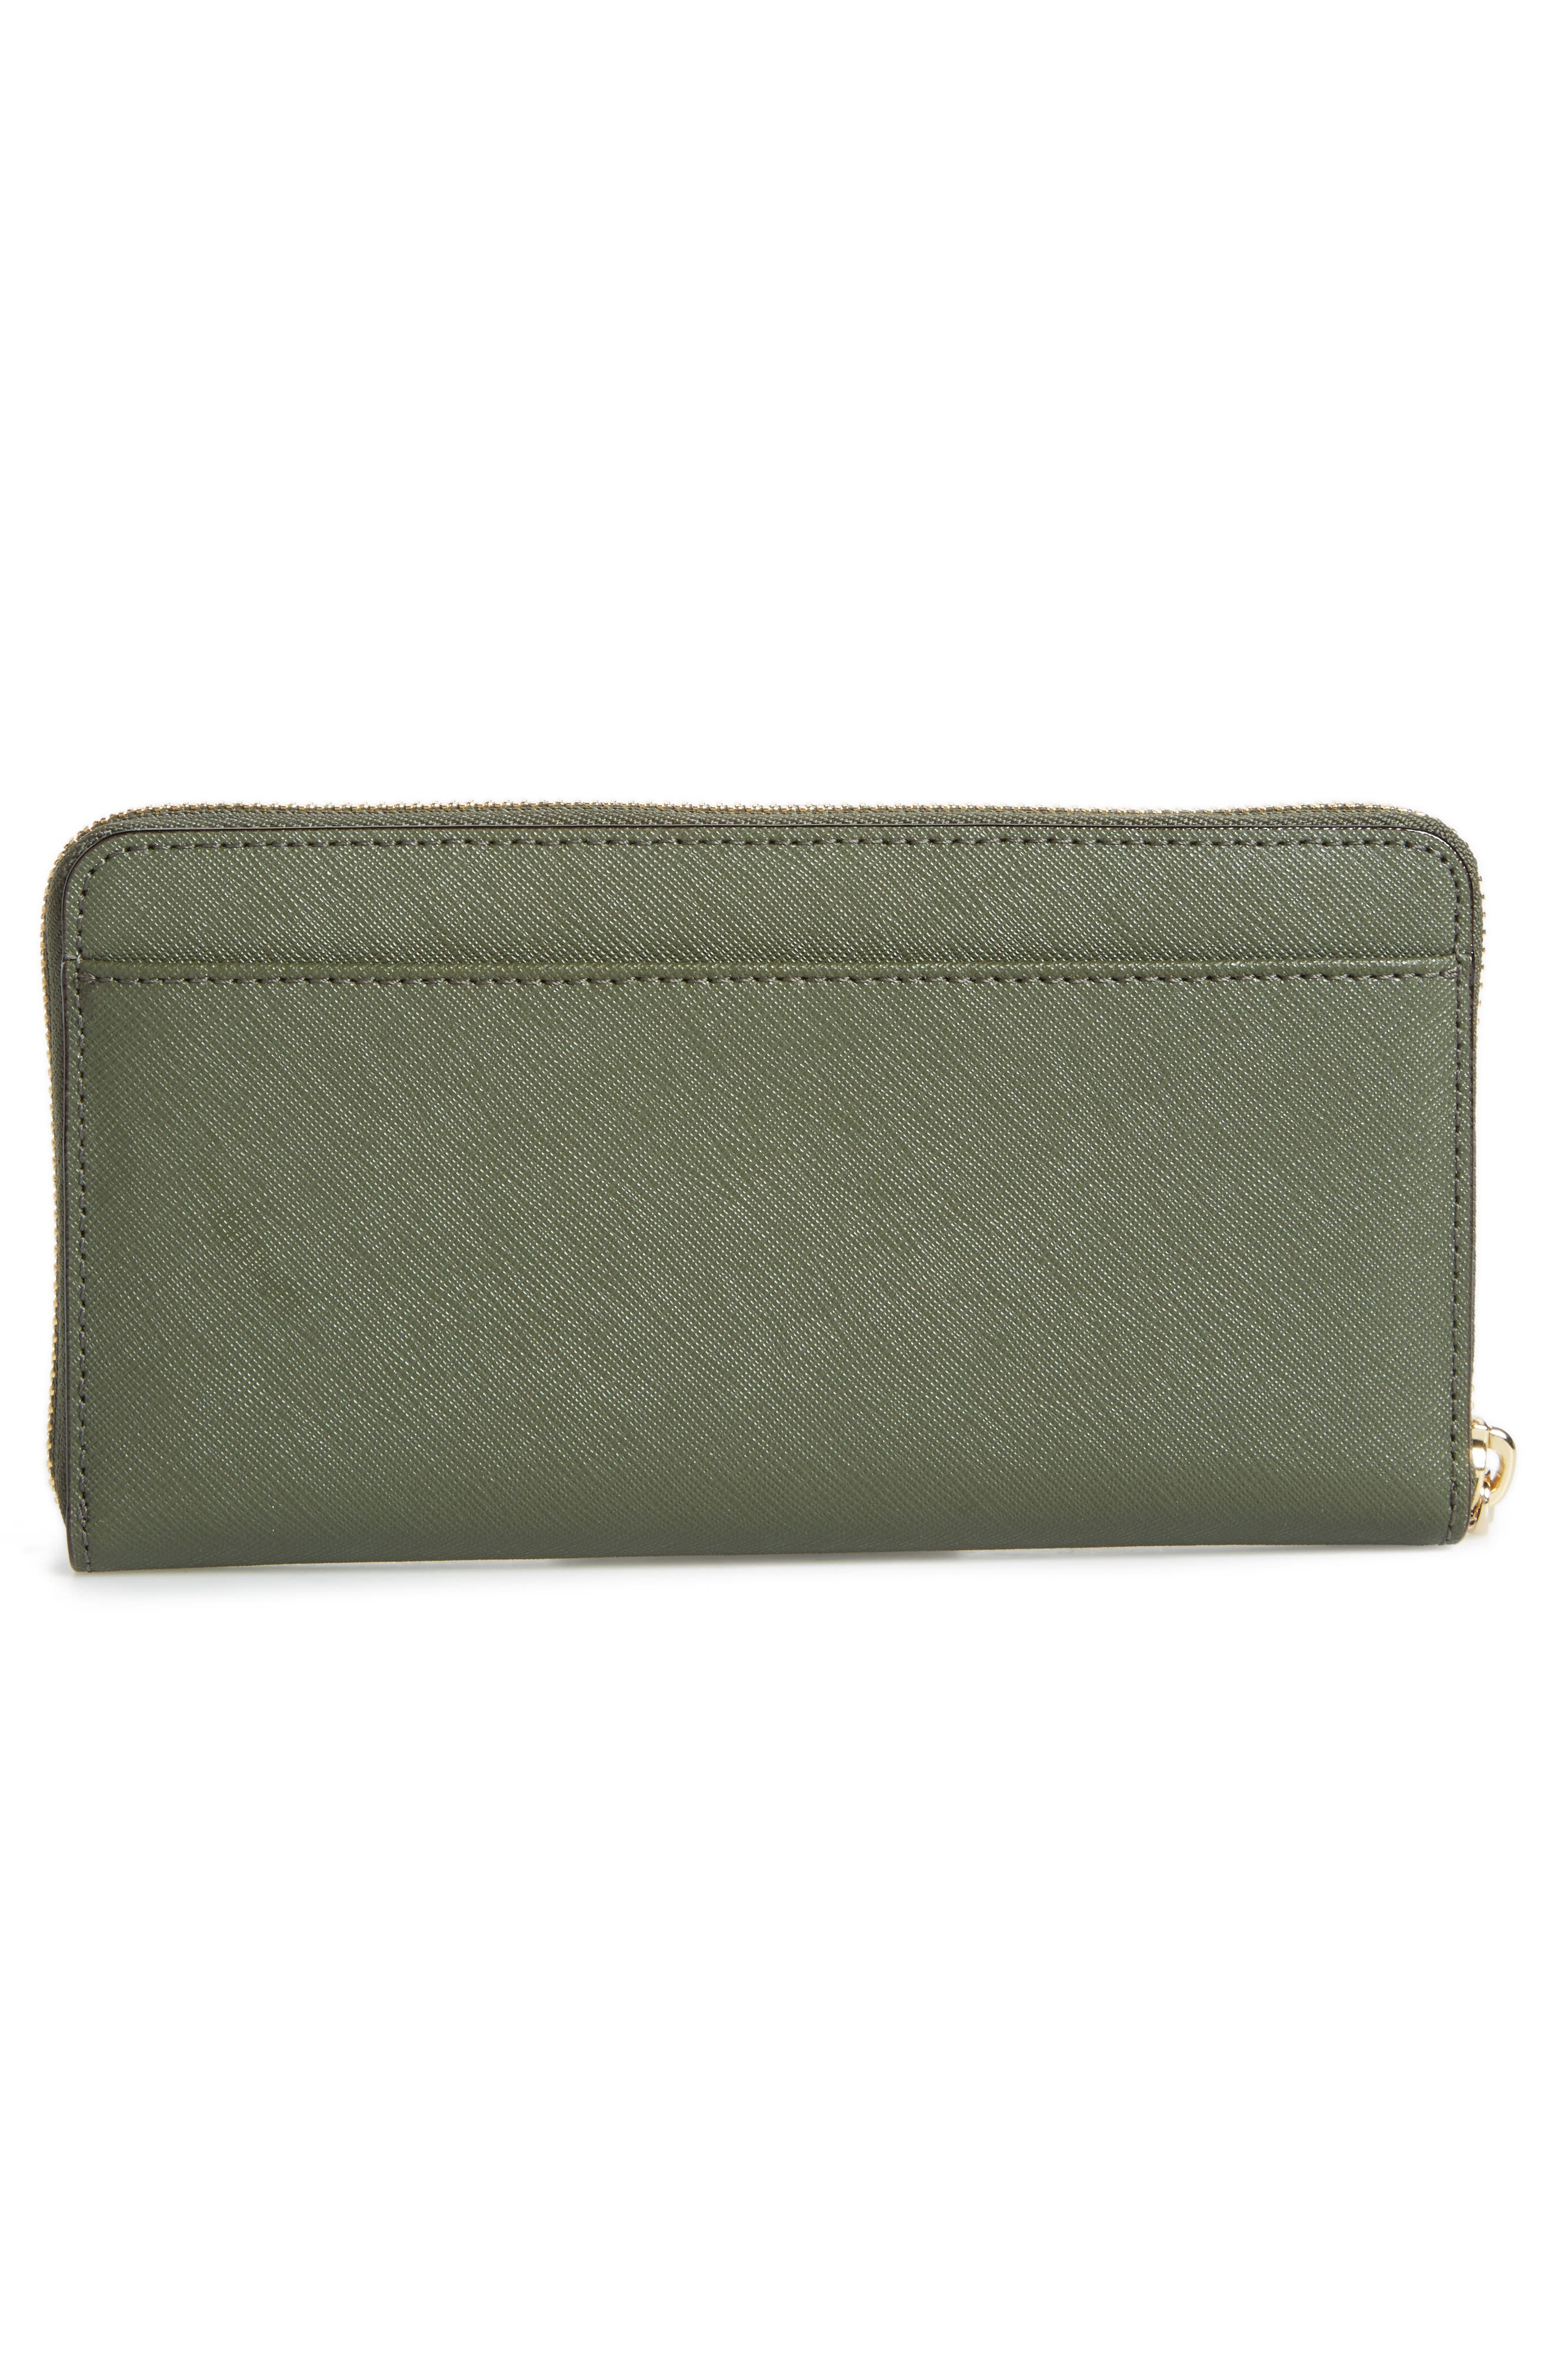 'cameron street - lacey' leather wallet,                             Alternate thumbnail 61, color,